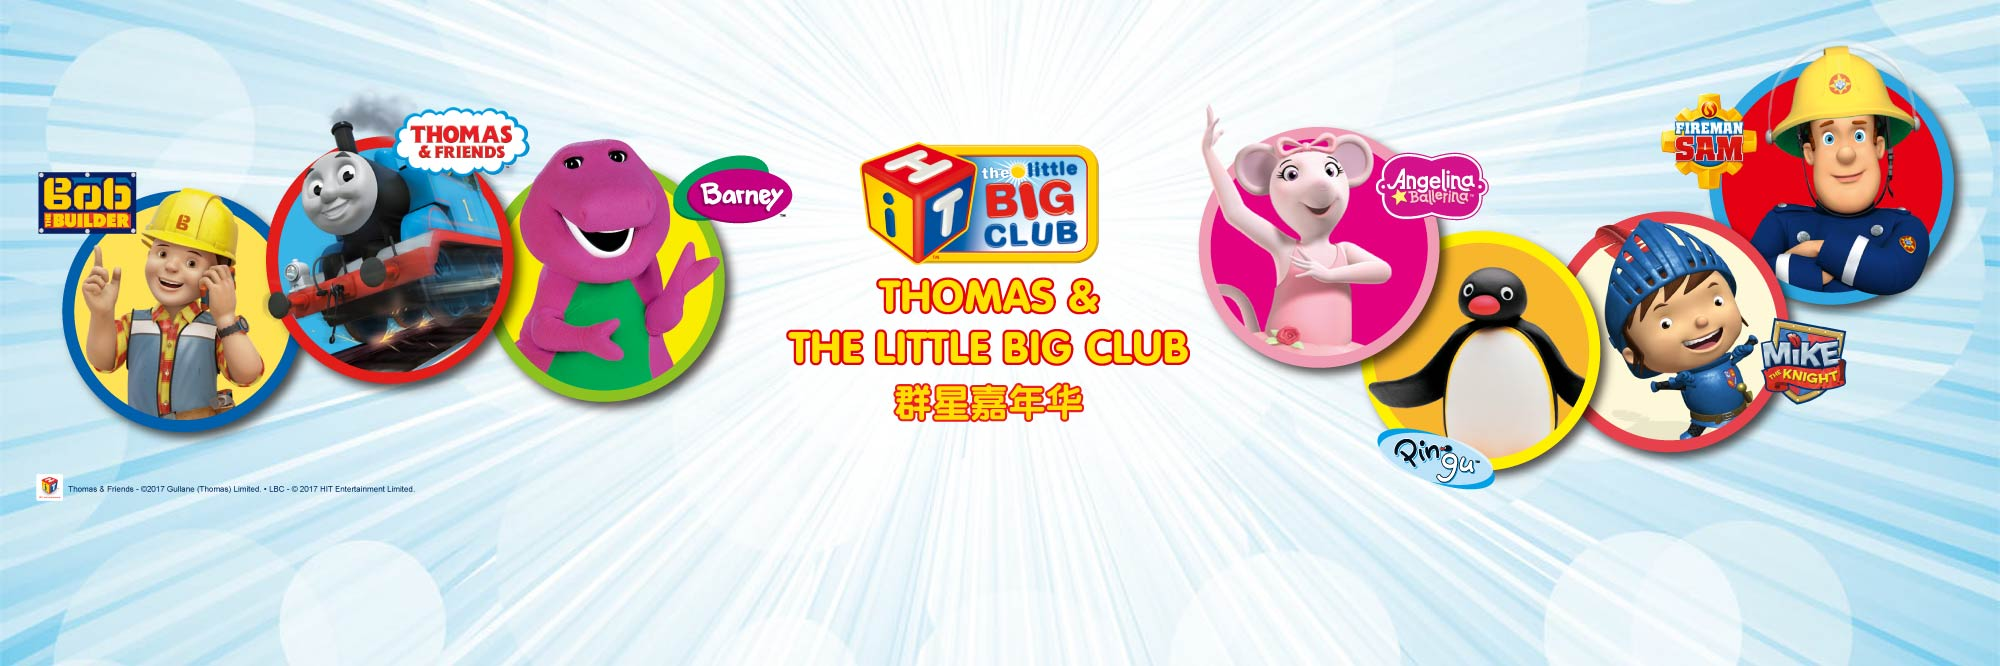 THE LITTLE BIG CLUB 群星主題活動